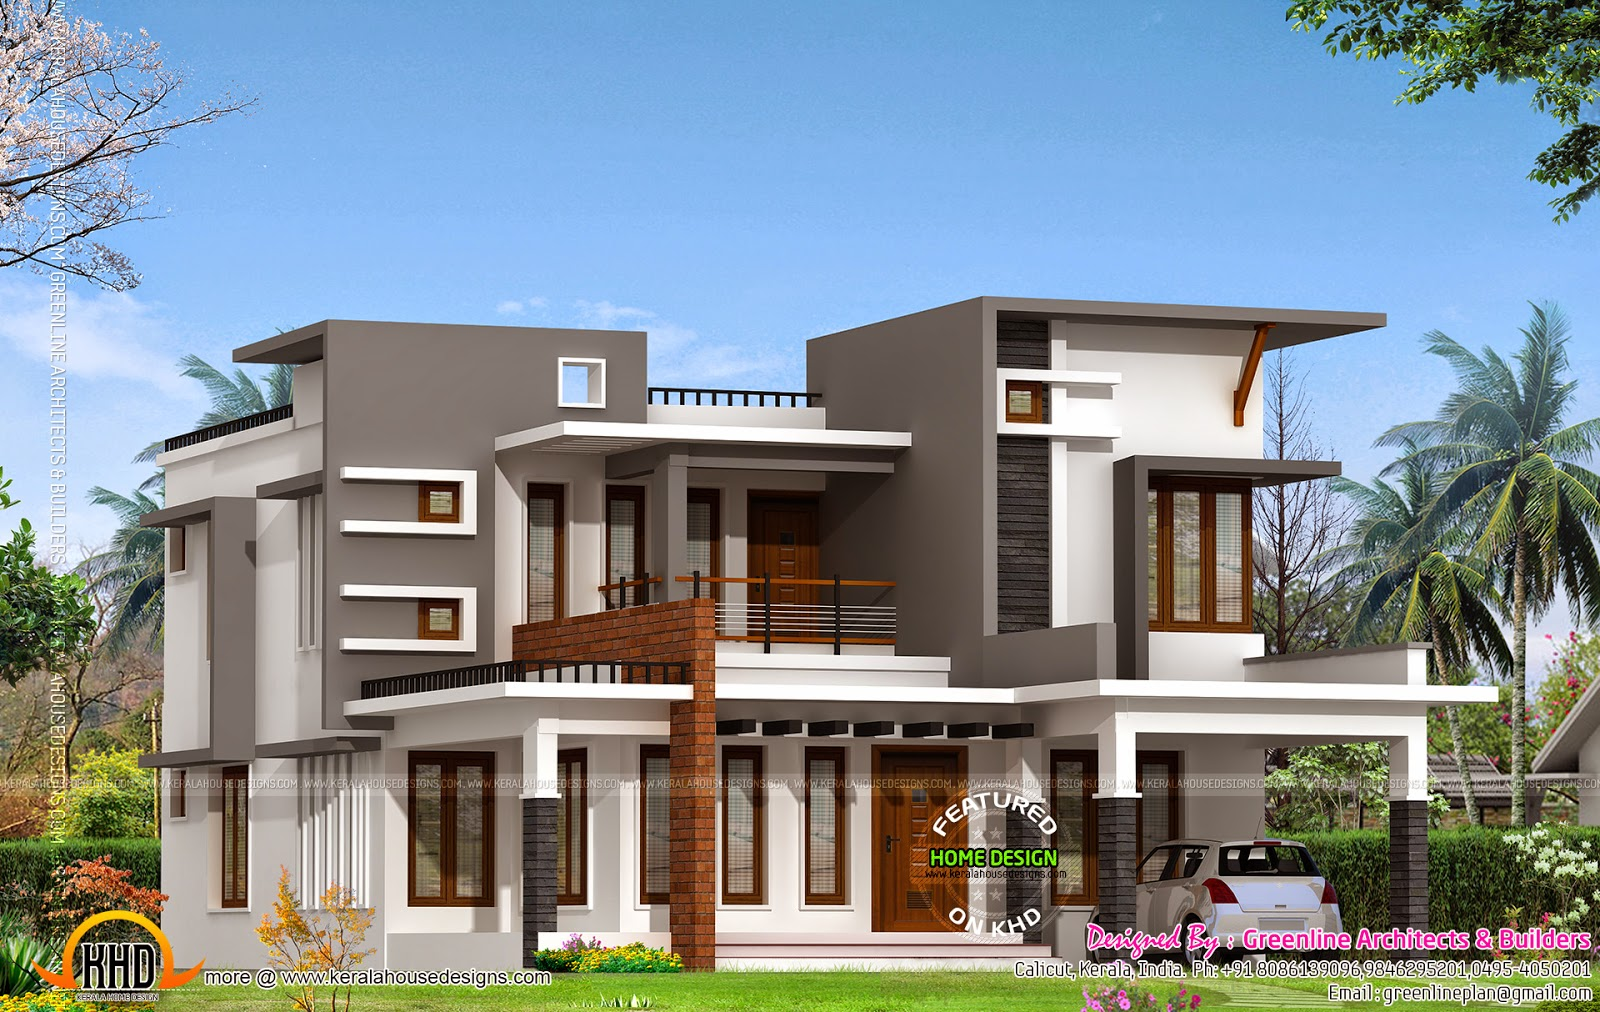 cost house floor plans house plans cost estimate cost house floor plans house plans cost estimate